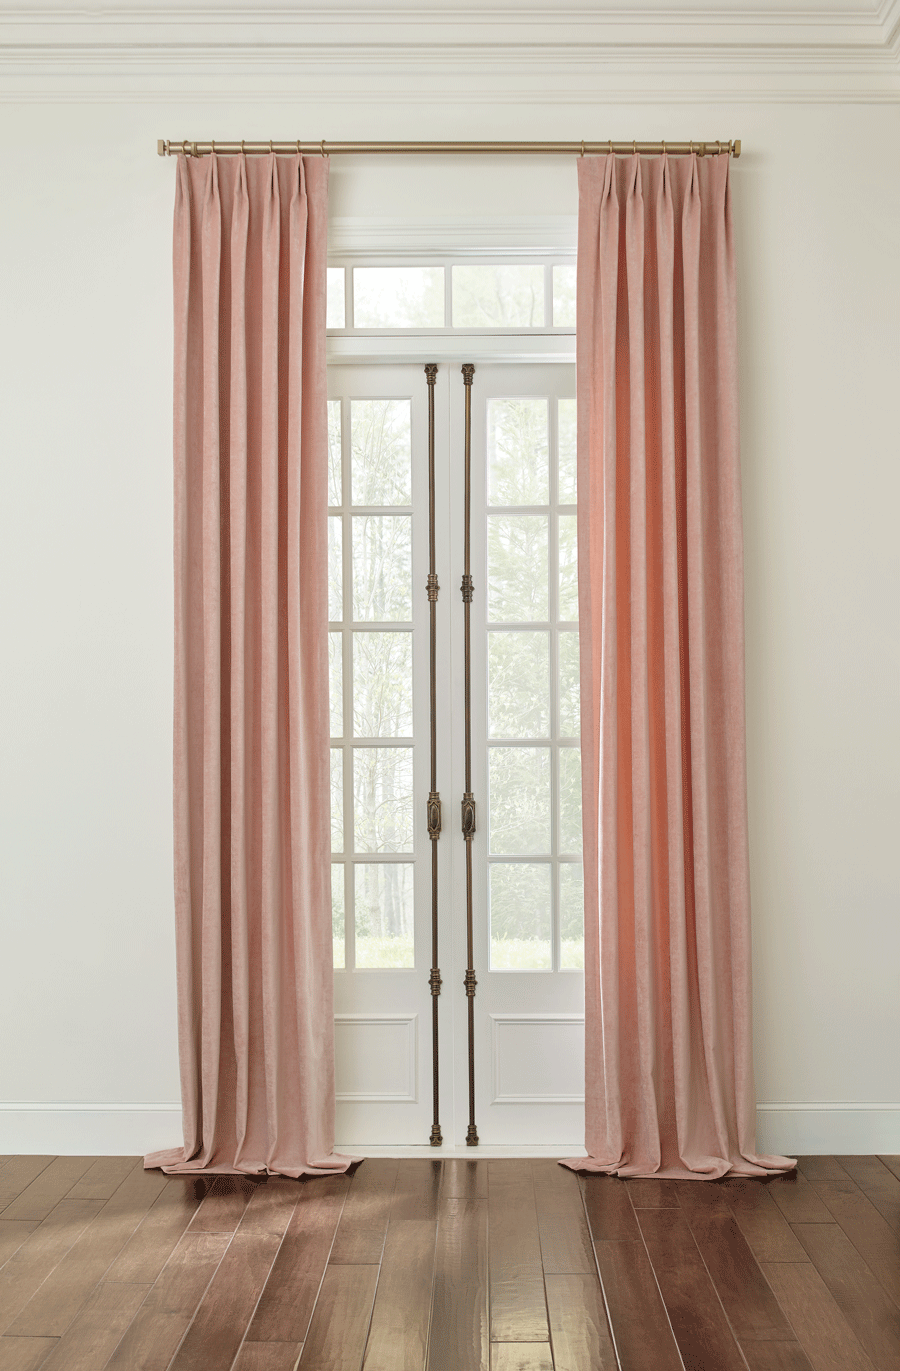 puddled pink drapery panels cover French doors